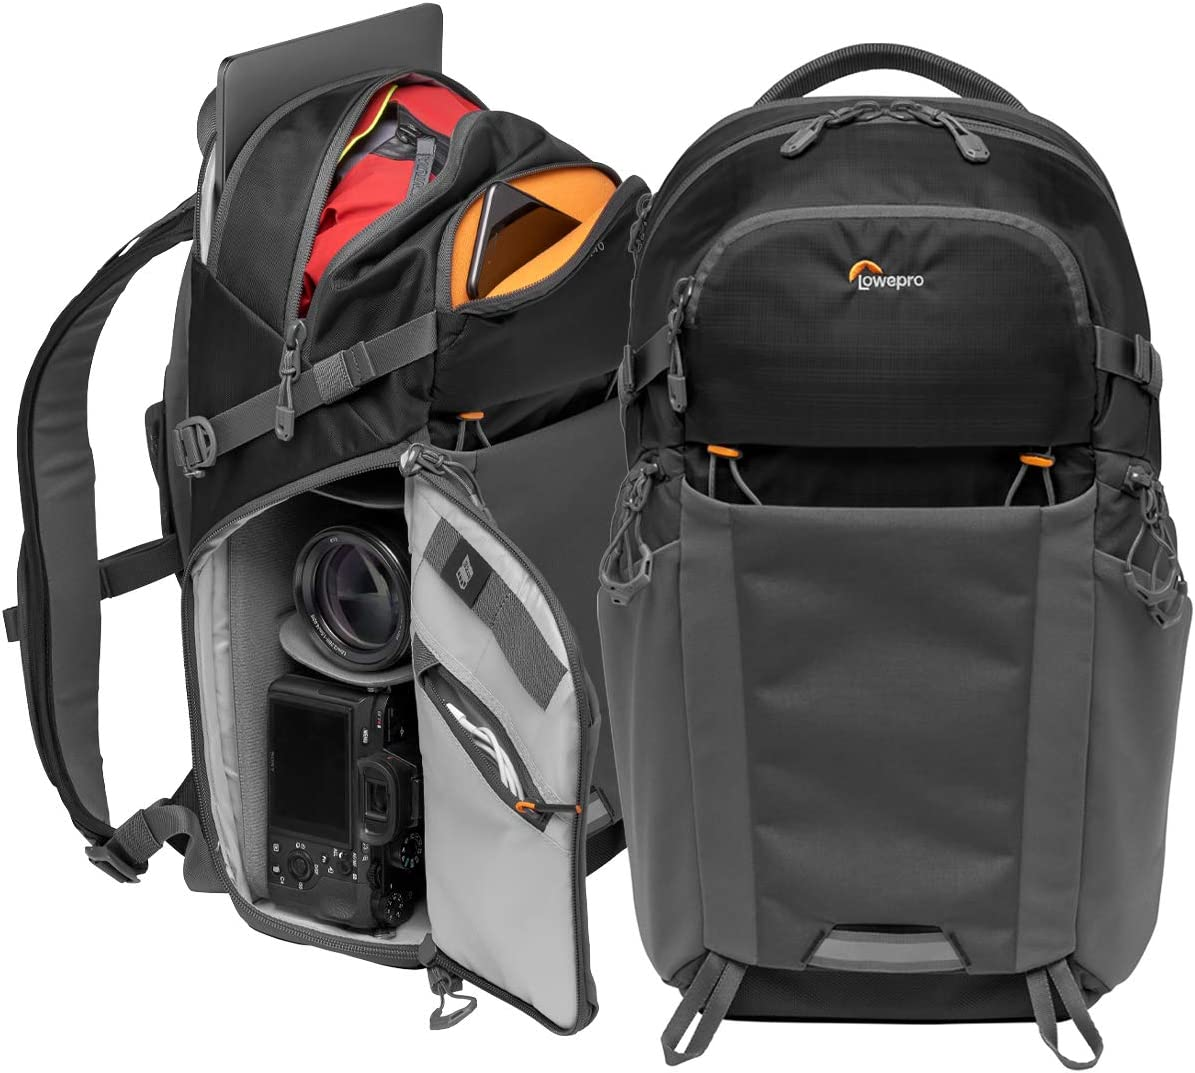 Lowepro LP37260-PWW Photo Active Outdoor Camera Backpack, QuickShelf Dividers, fits 12inch Laptop/2L Hydration, for Mirrorless, Sony, Canon, Nikon, Lenses, Gimbal, Drone, DJI, Osmo, Mavic, Black/Grey